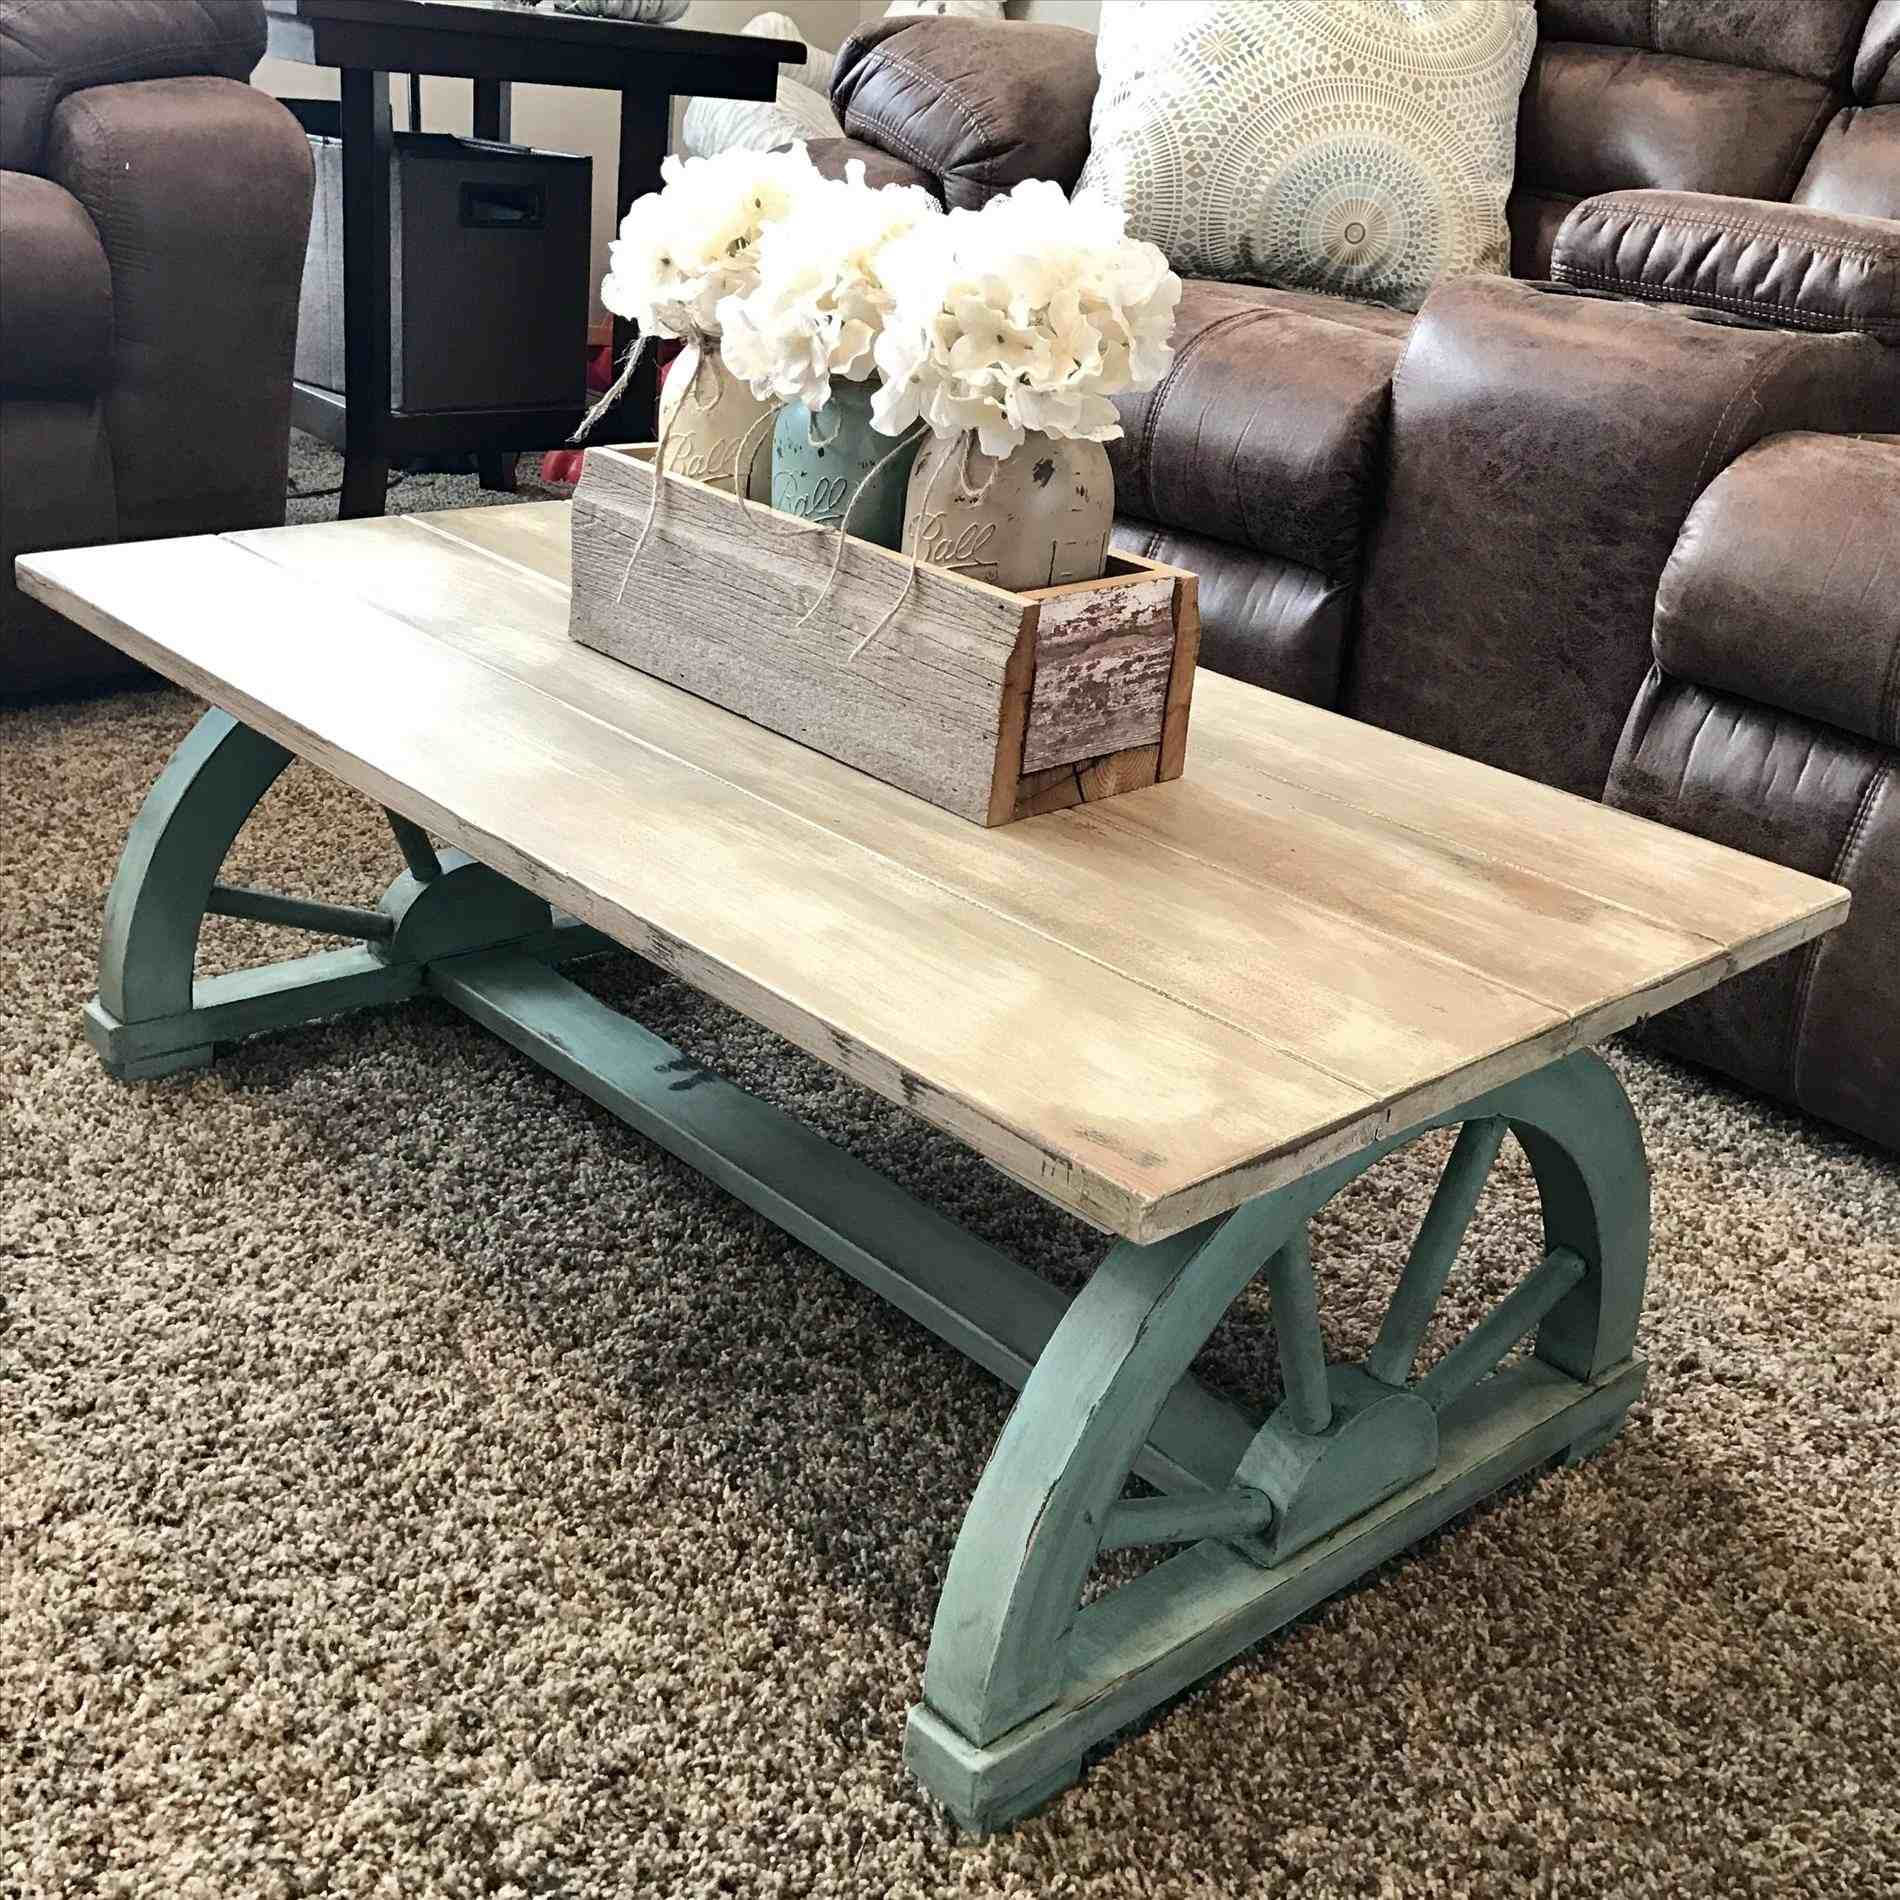 diy accent ideas centre rhgohar rustic side table decor coffee house centerpiece accents distressed dining room furniture pottery barn mercury glass floor lamp essentials